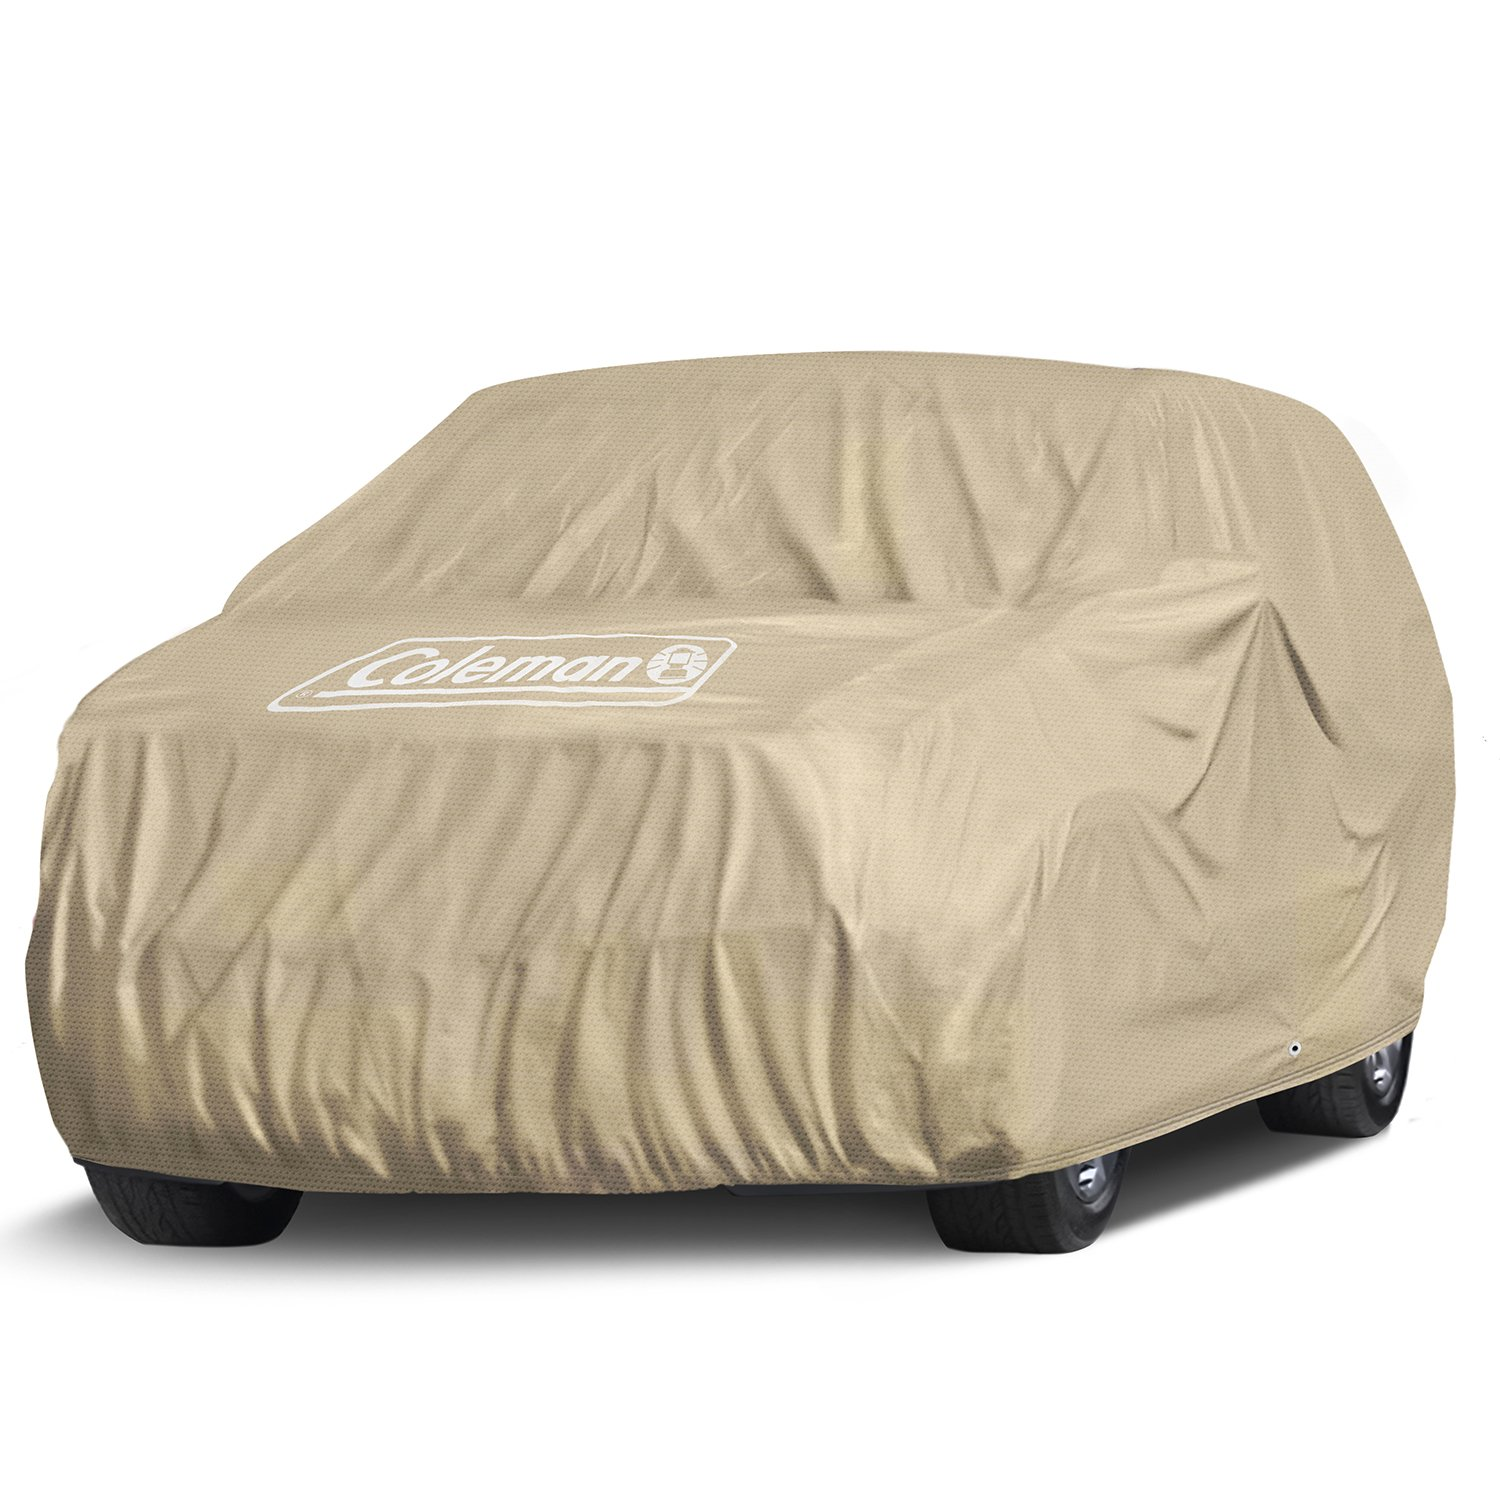 Coleman Premium Executive SUV Cover -  Indoor-Outdoor Cover Waterproof/Dustproof/Scratch Resistant/UV Protection for Vehicles up to 190'' Inches